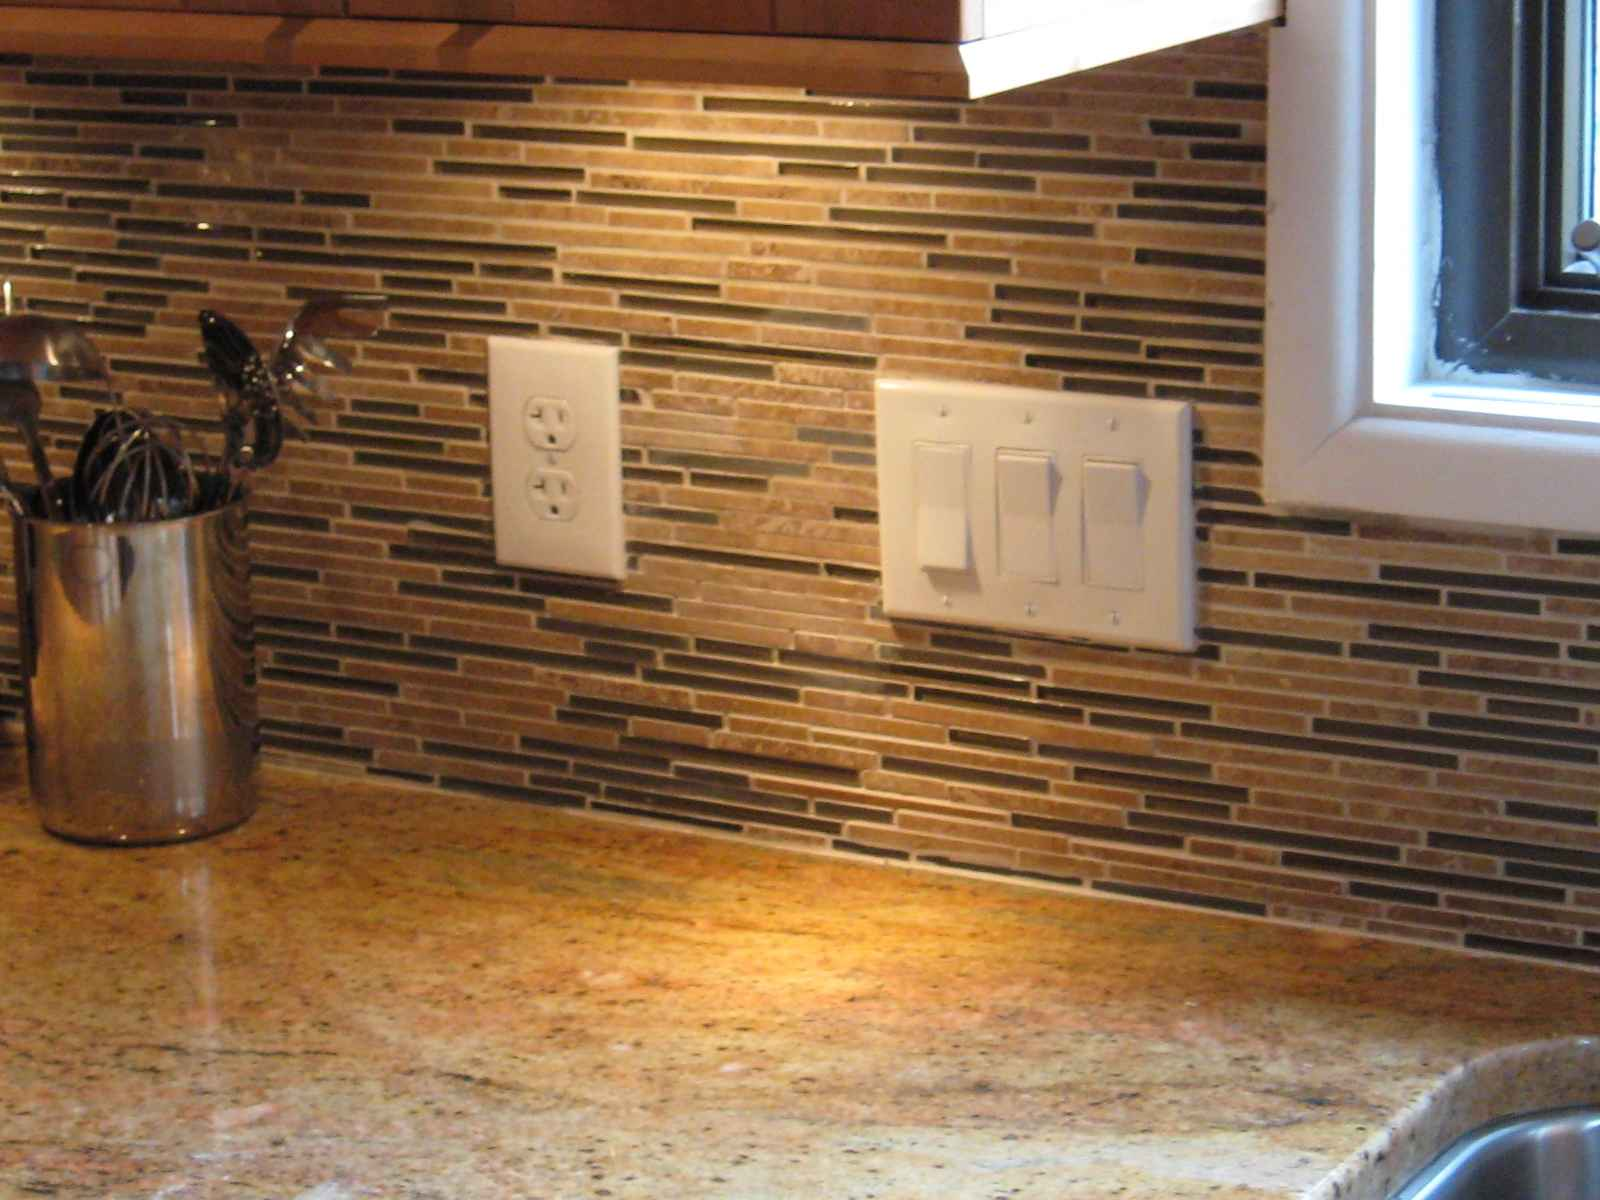 Backsplash Tile Frugal Backsplash Ideas | Feel The Home